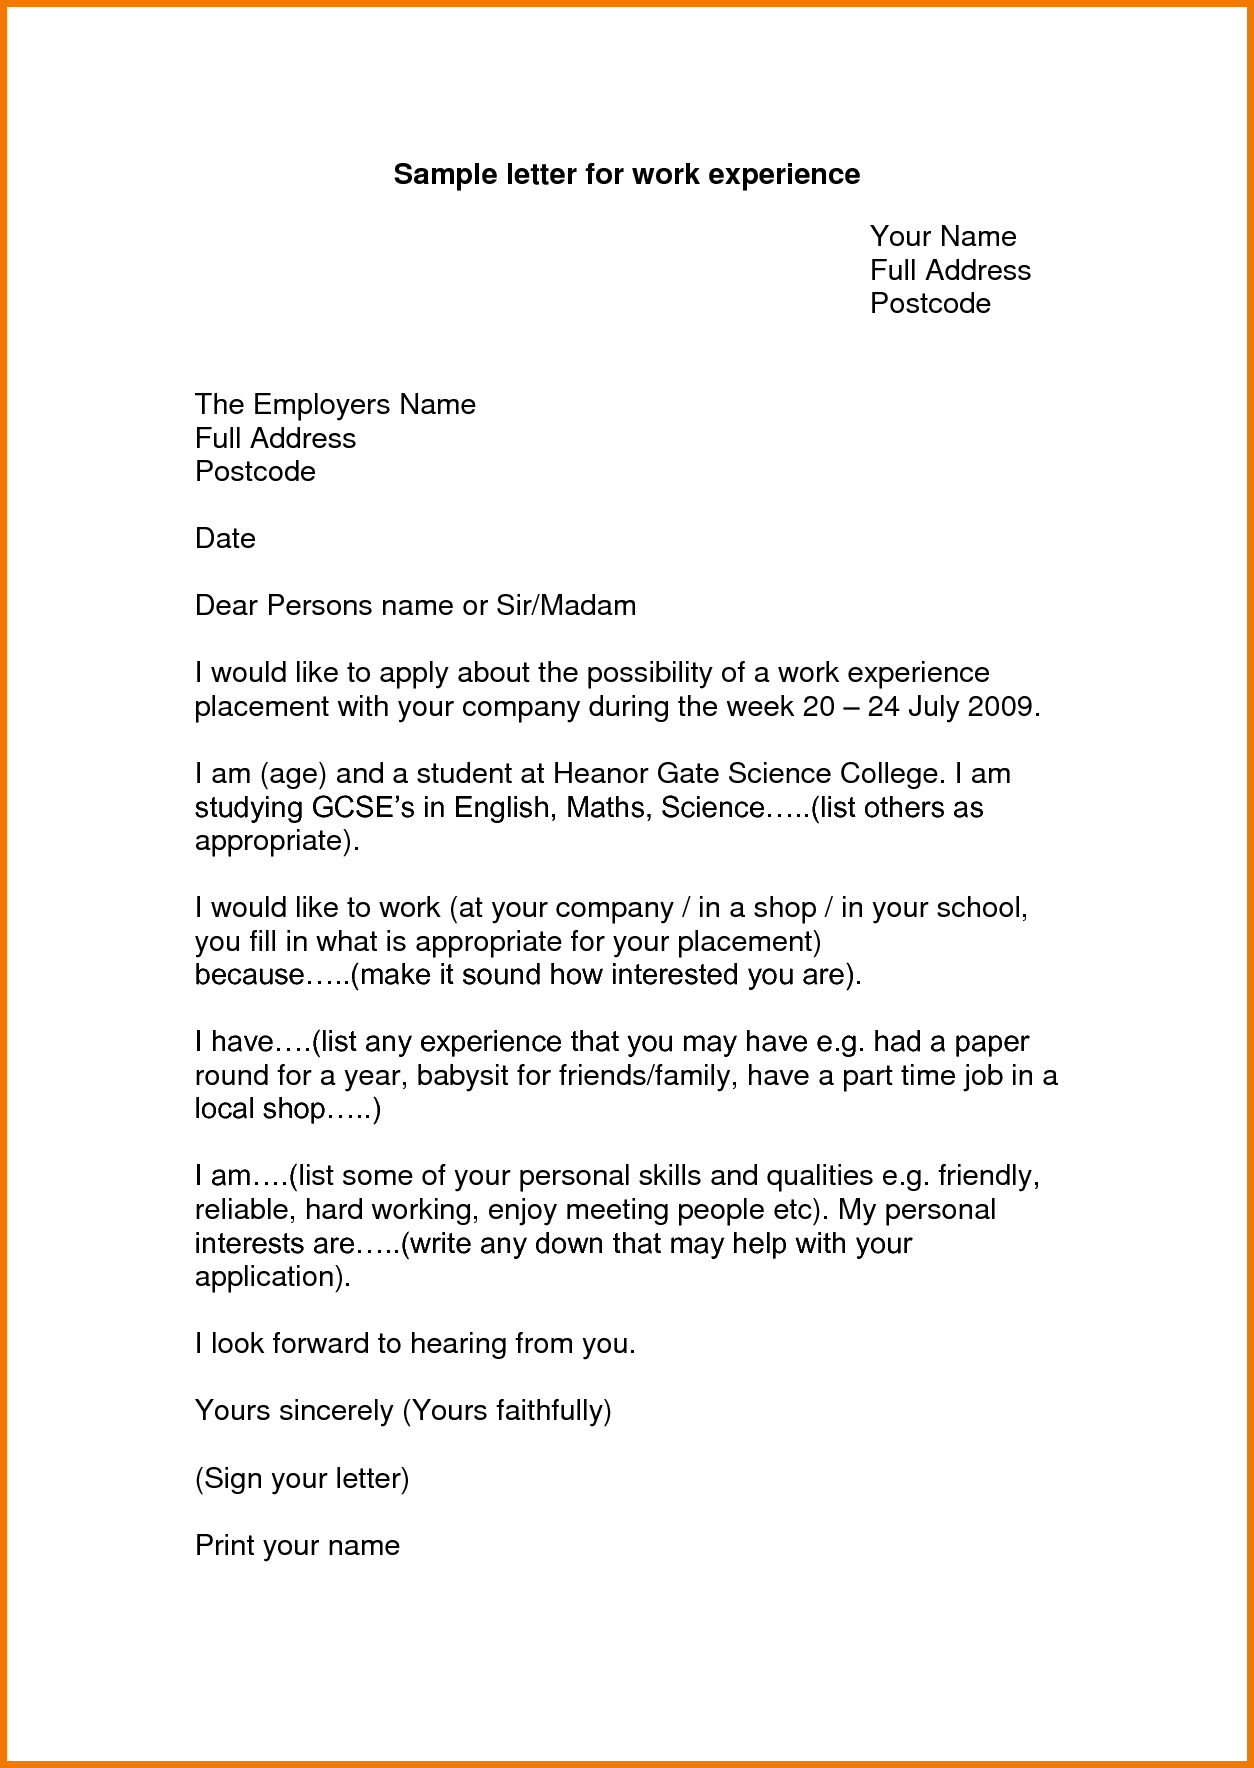 Experience letter format for work appeal letters sample experience letter format for work appeal letters sample certificate template free word excel pdf documents download yadclub Gallery